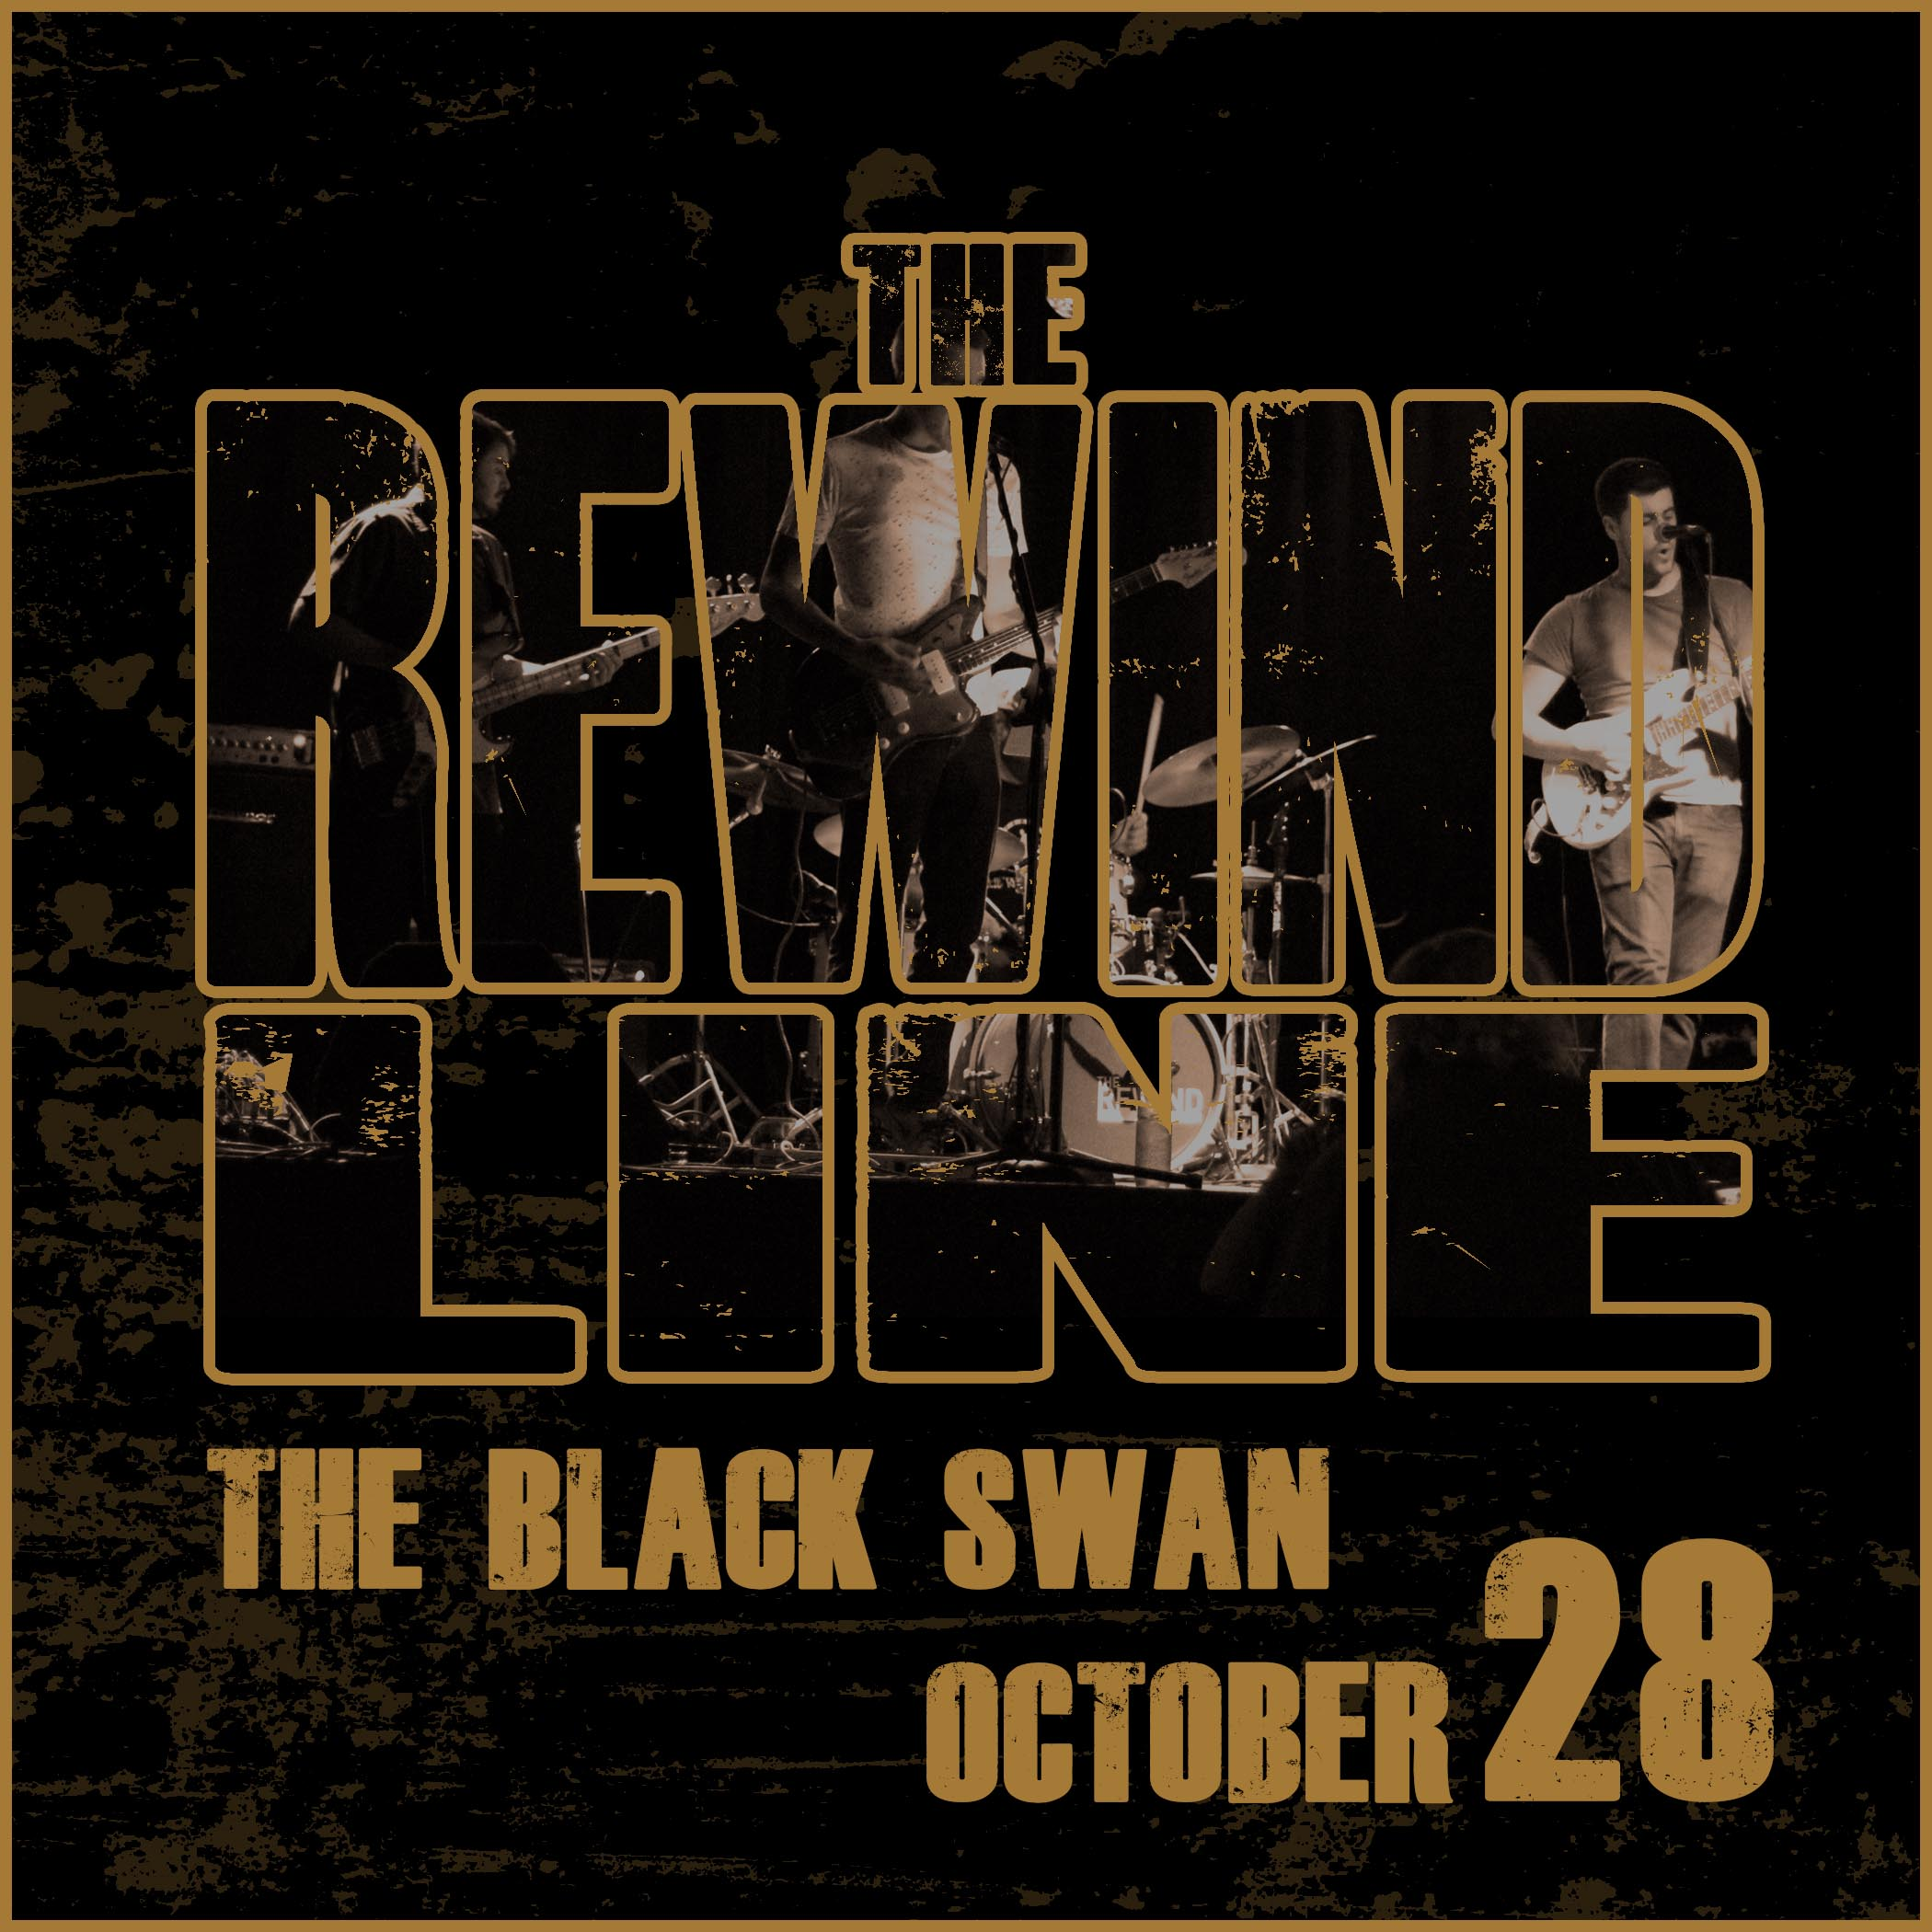 Oct 28, 2017- The Black Swan